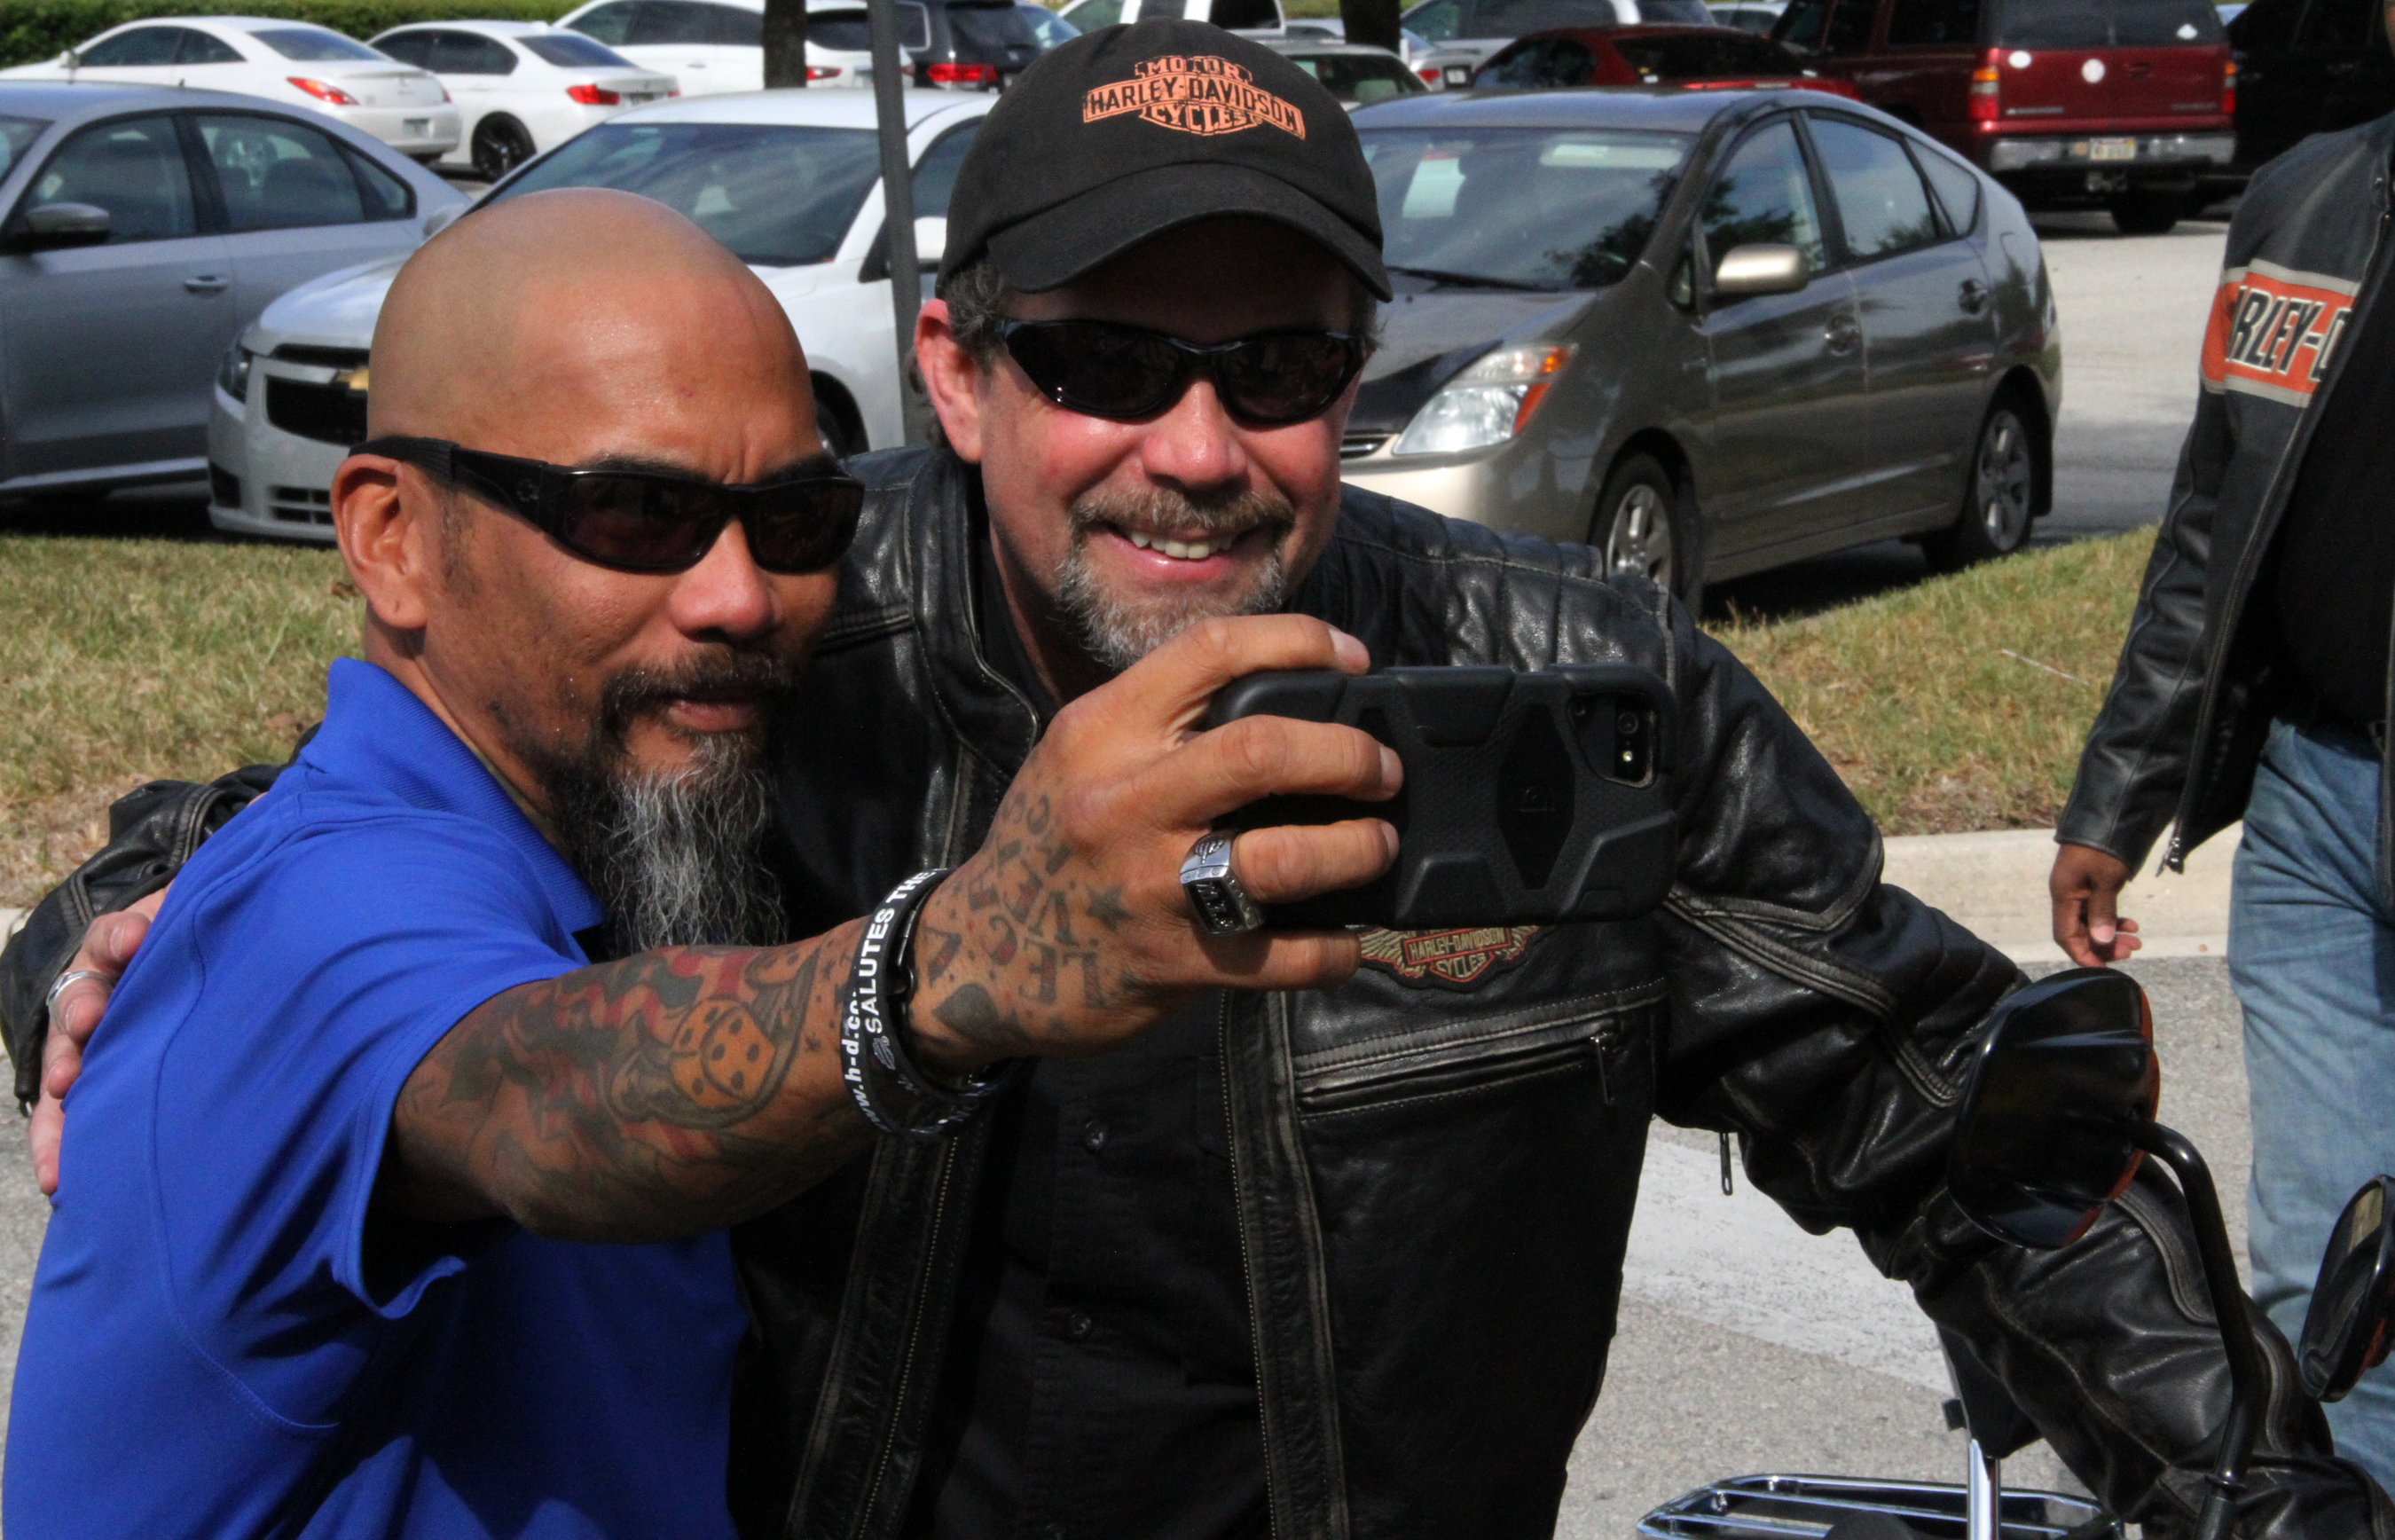 mission special delivery: harley-davidson partners with wounded